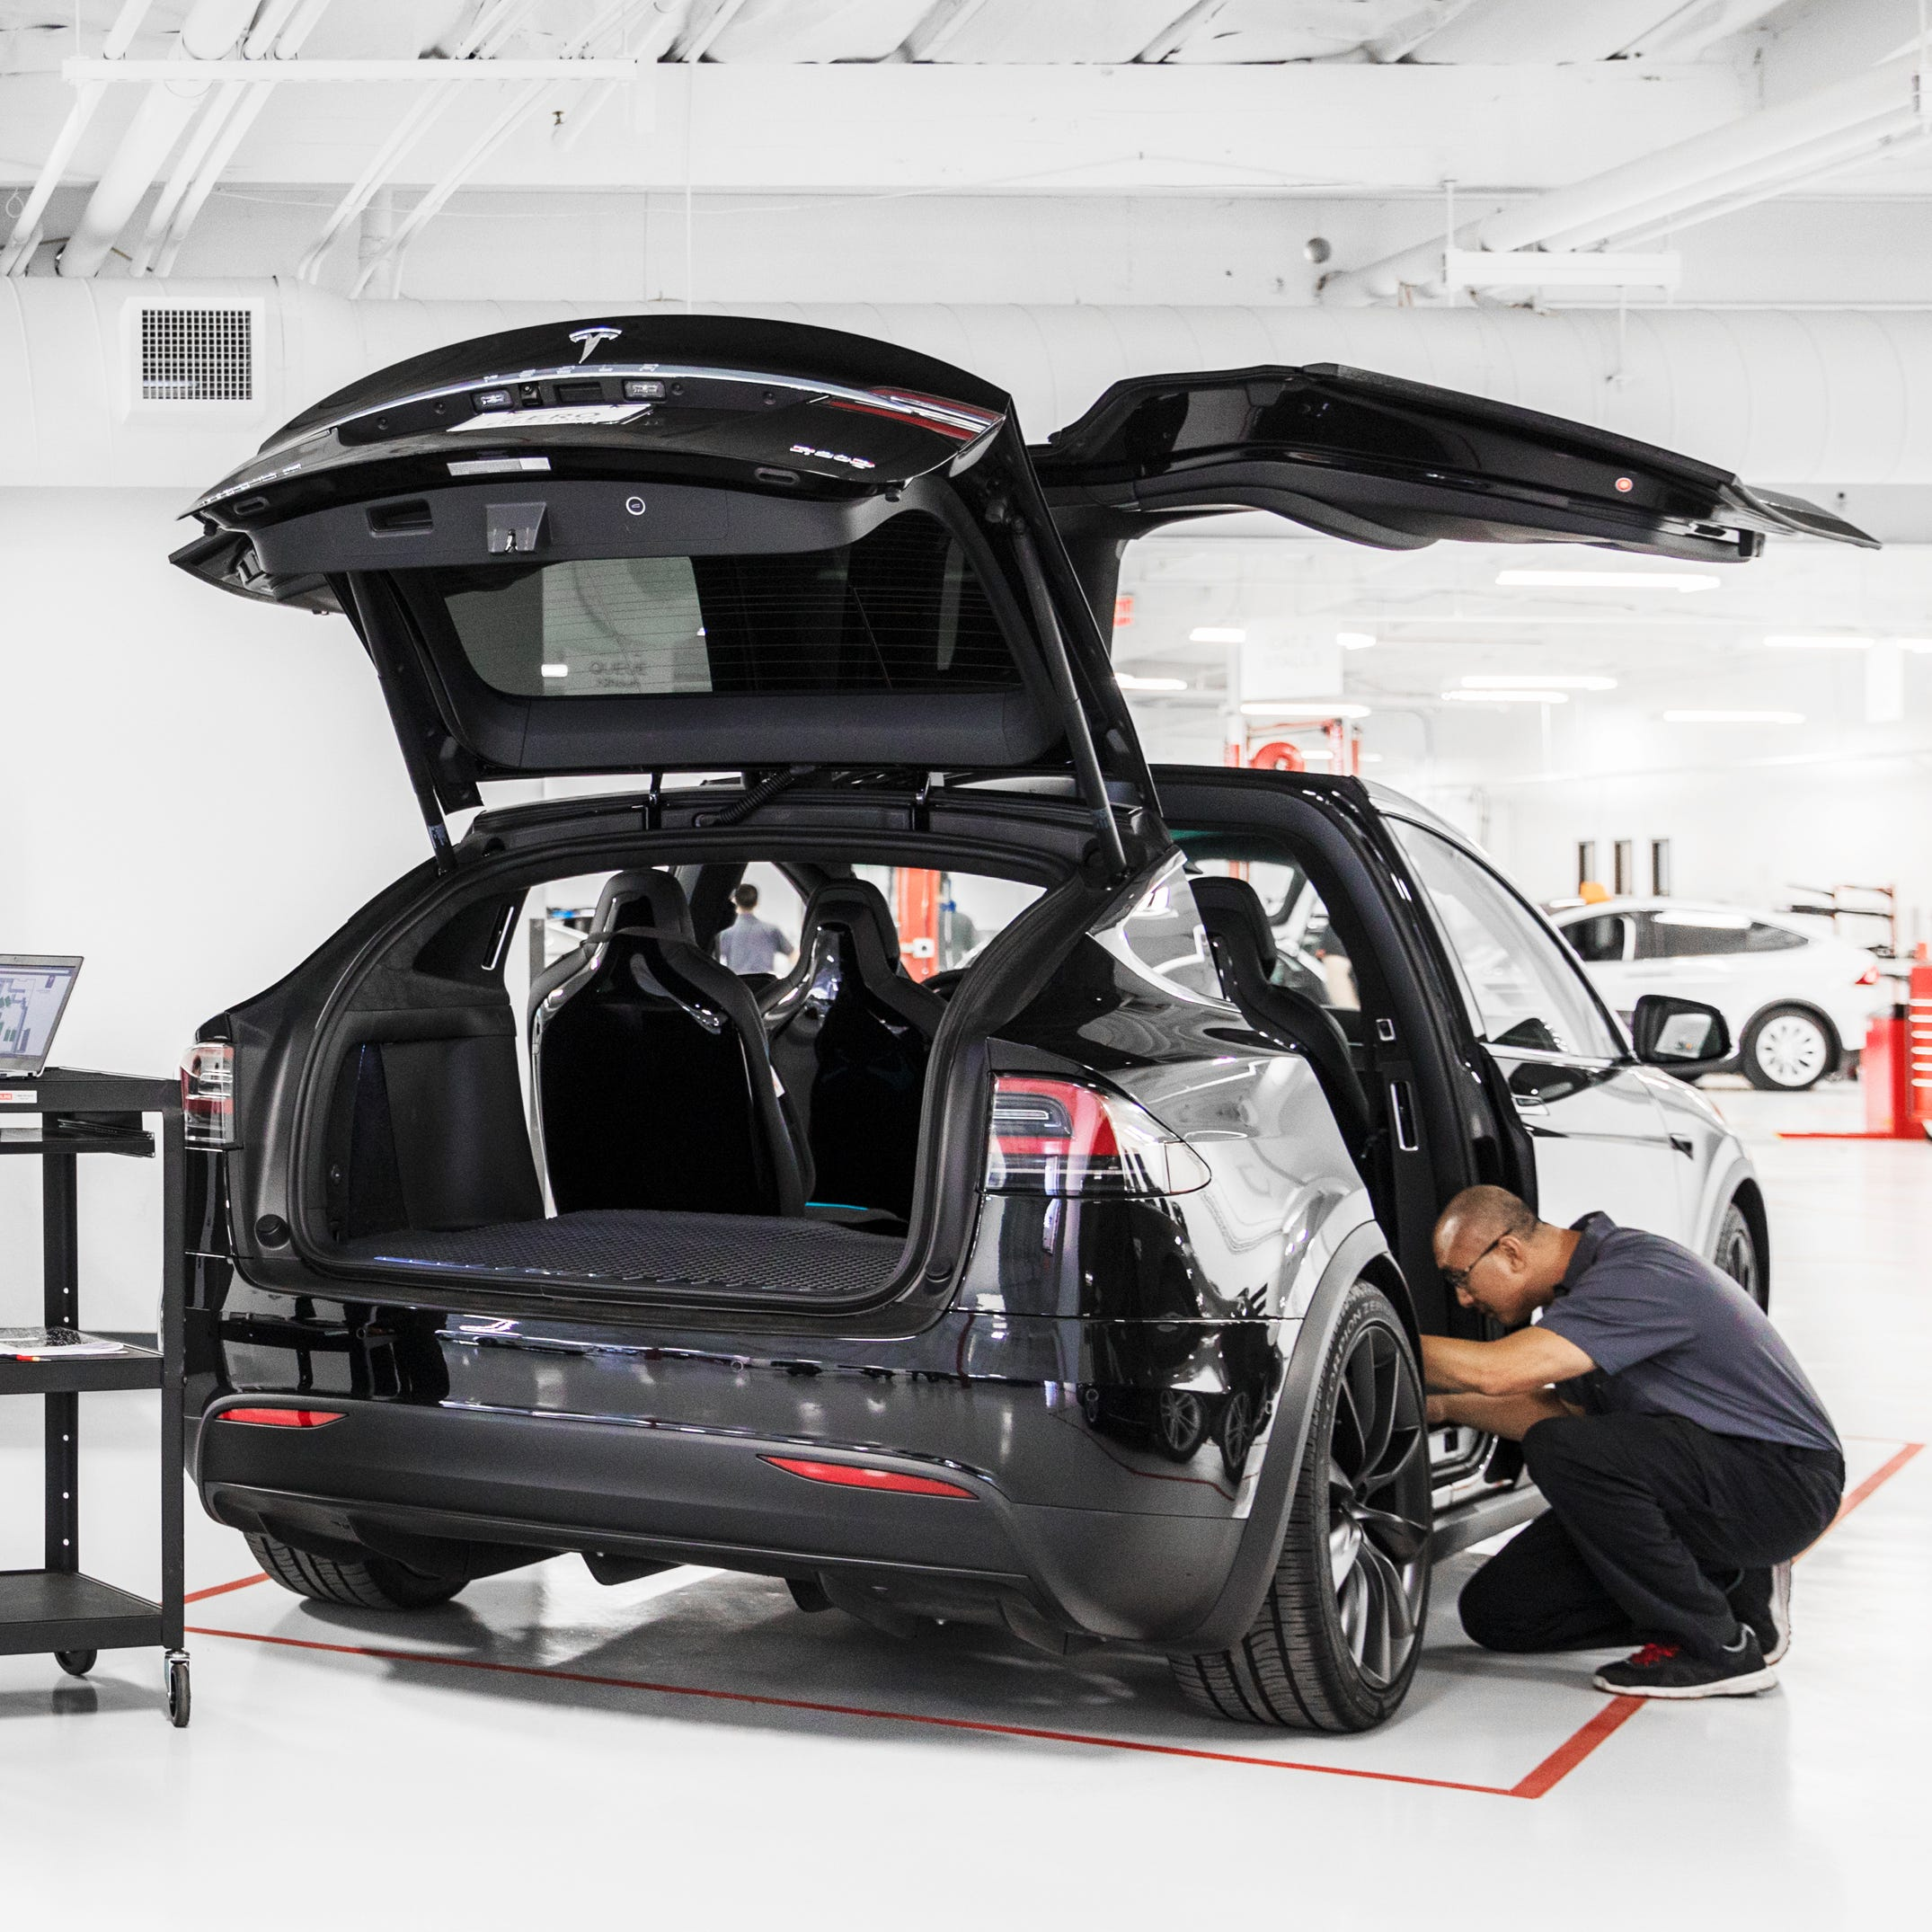 Tesla Reno service center officially opens, taking appointments